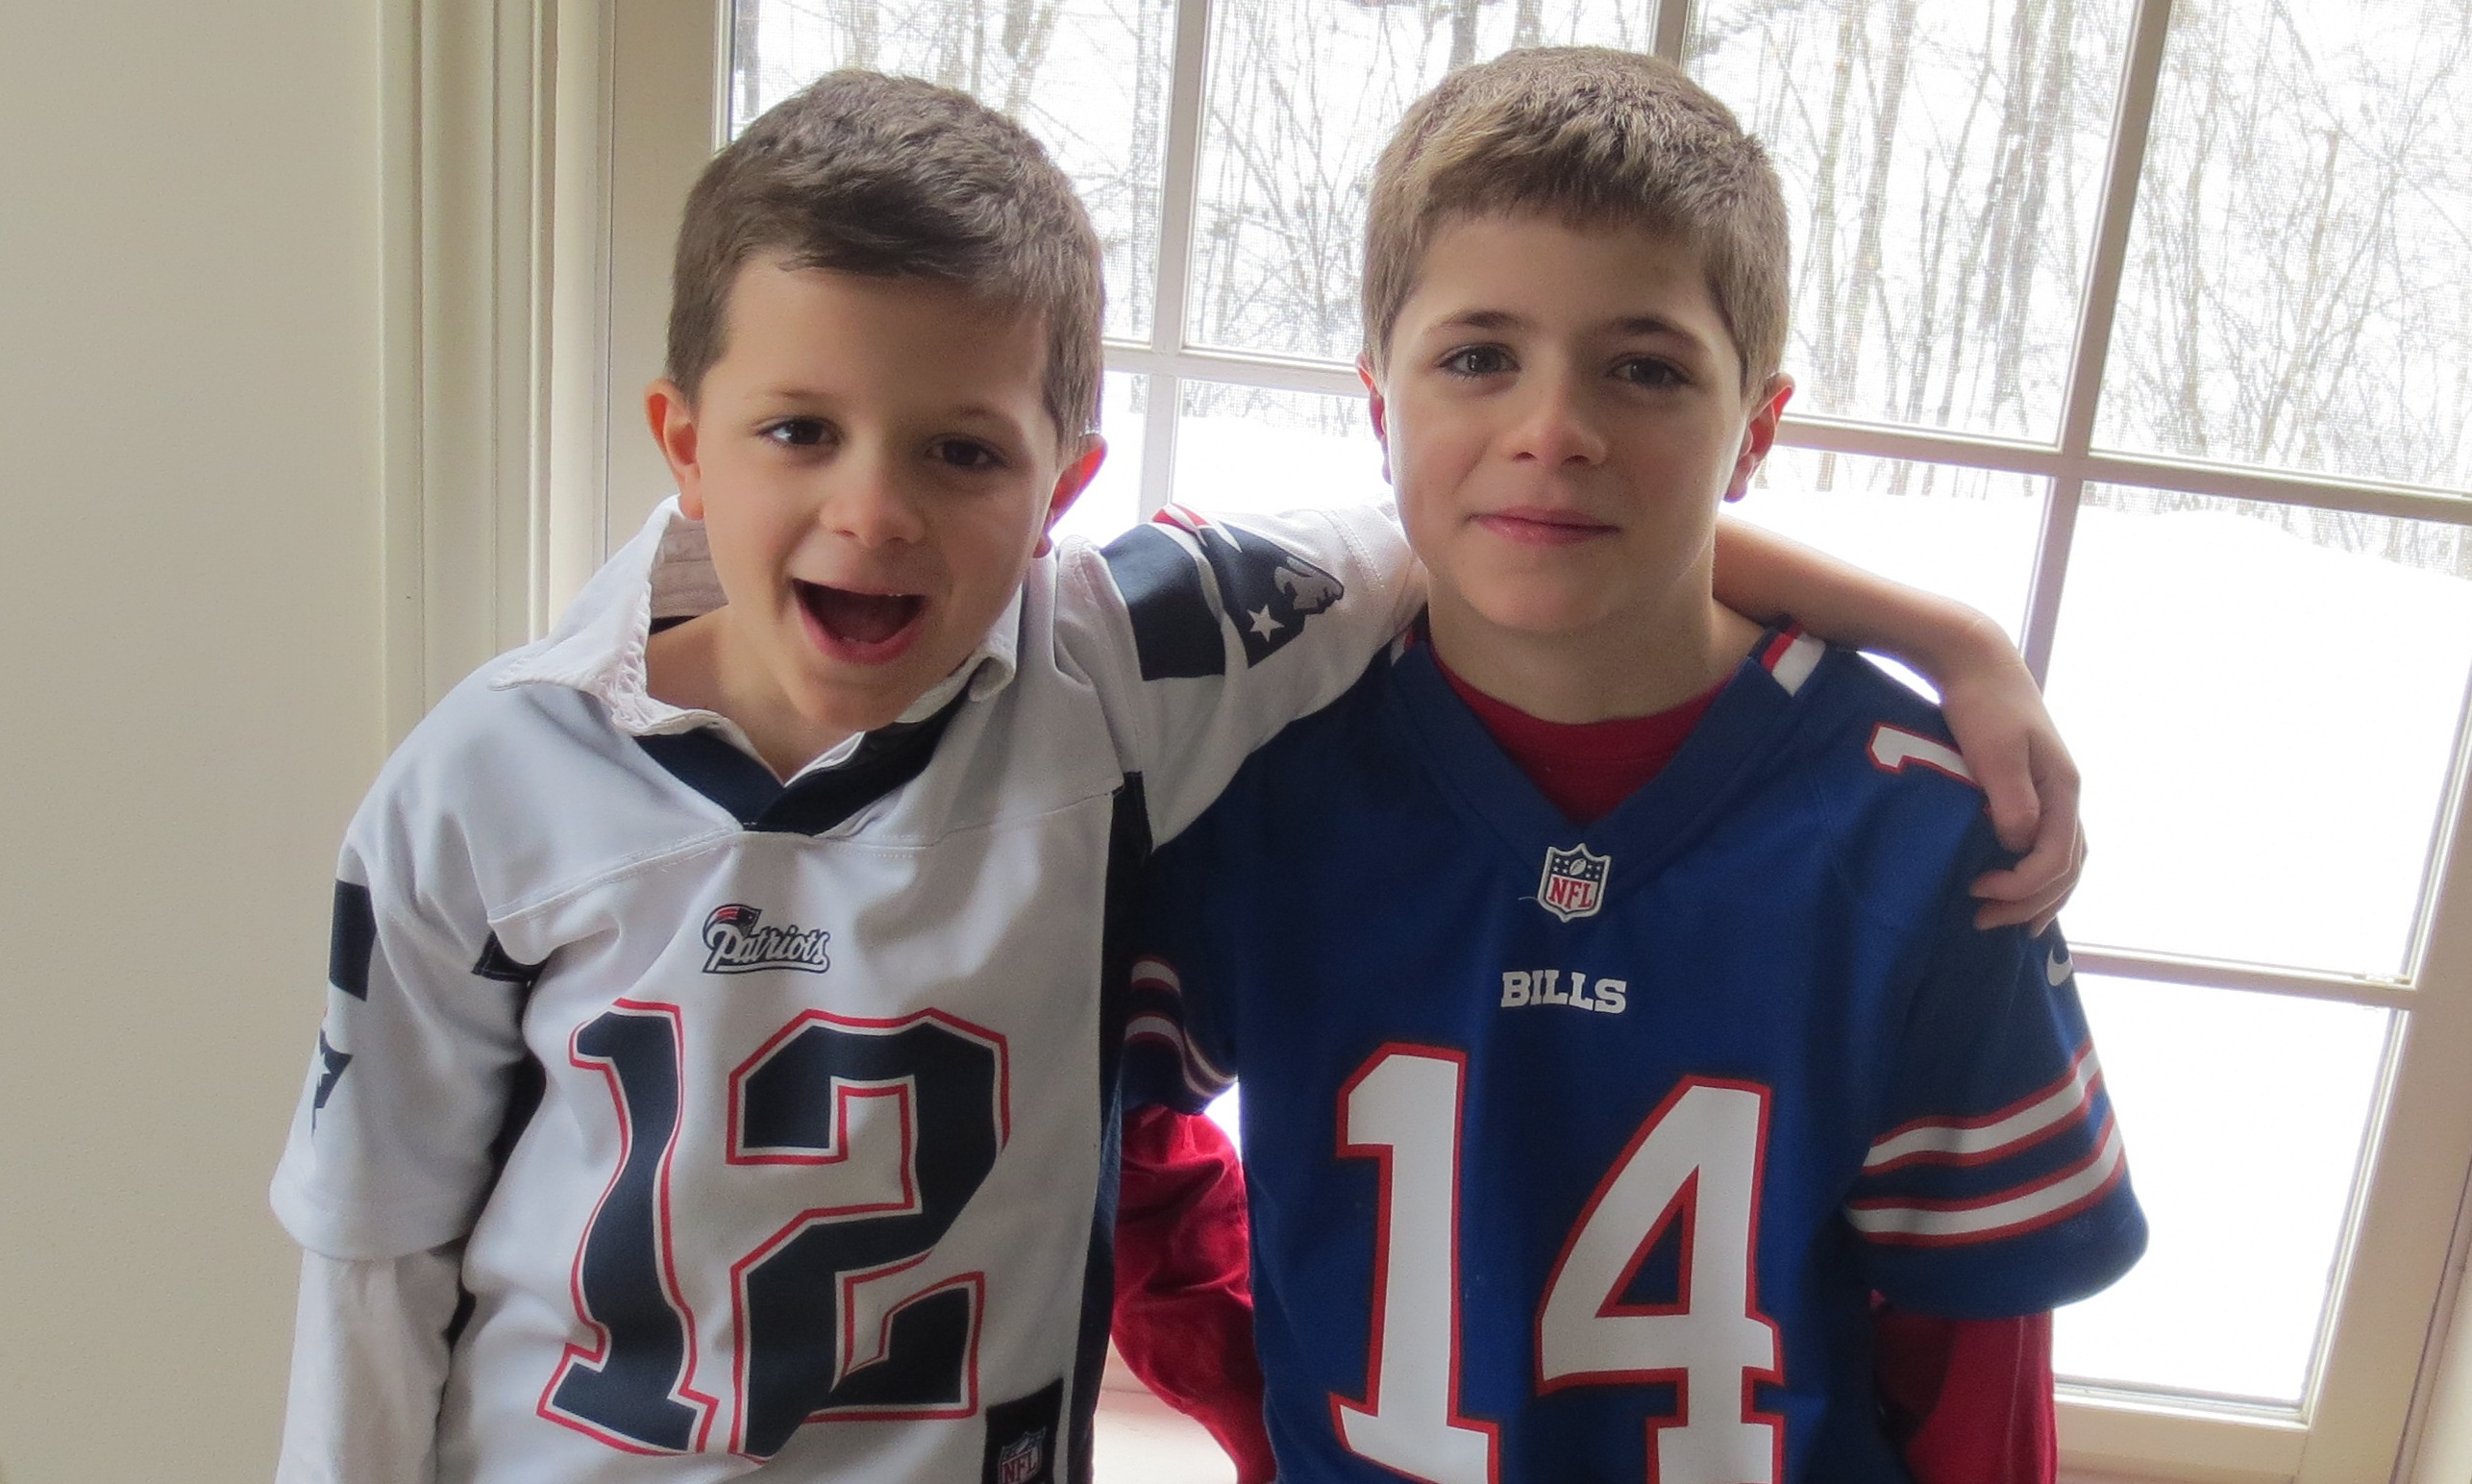 Charlie & Joey in their football jerseys